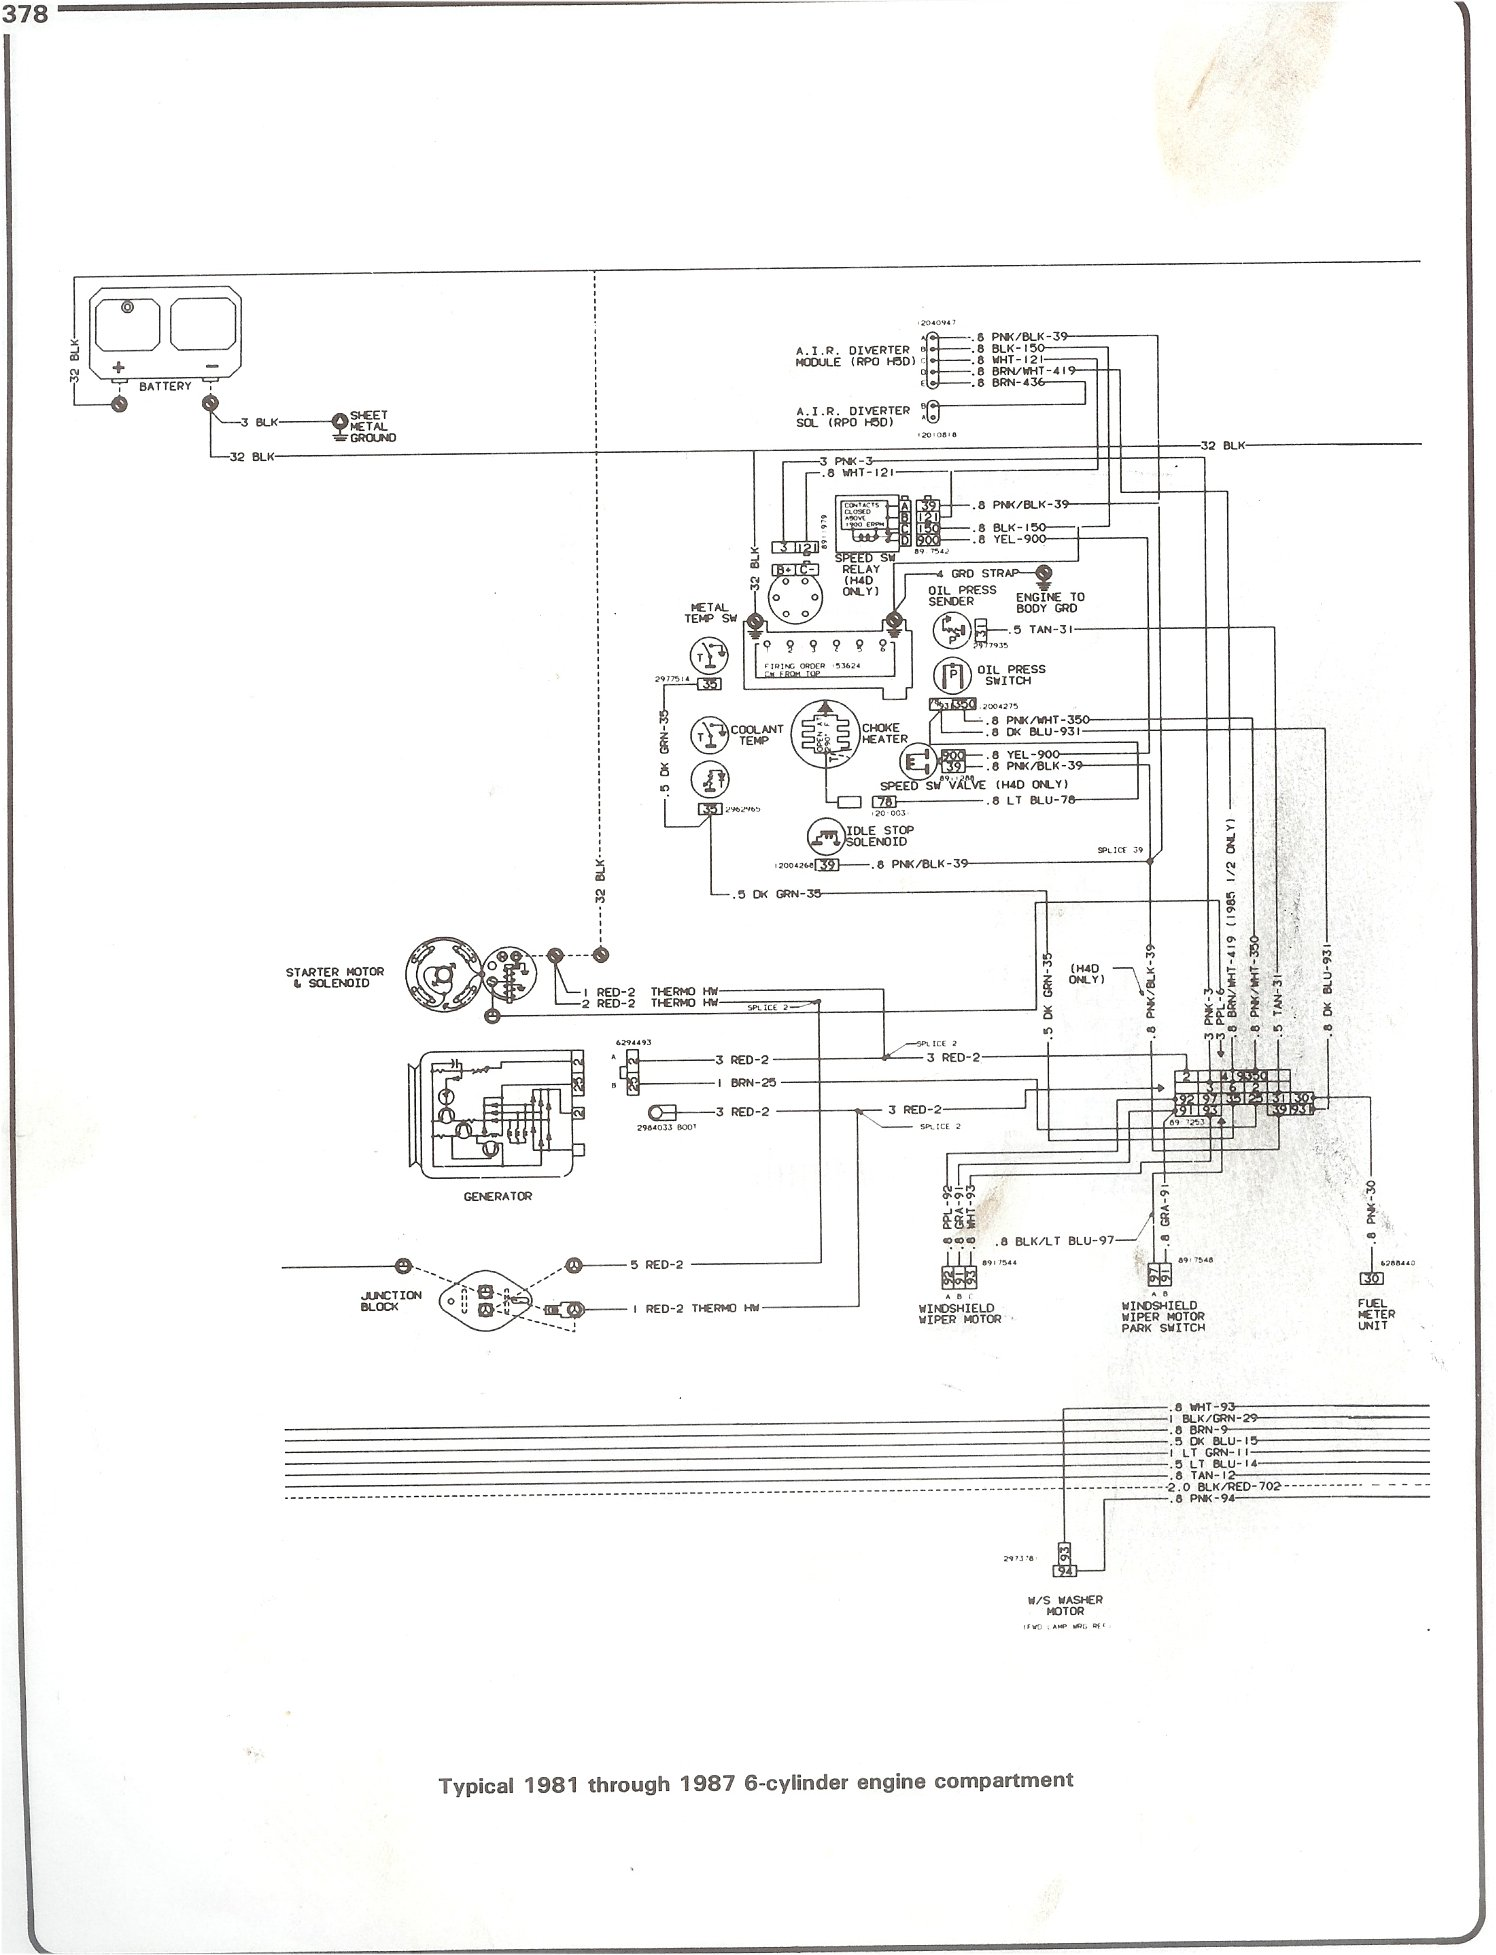 73-87 Chevy Truck Wiring Diagram Manual